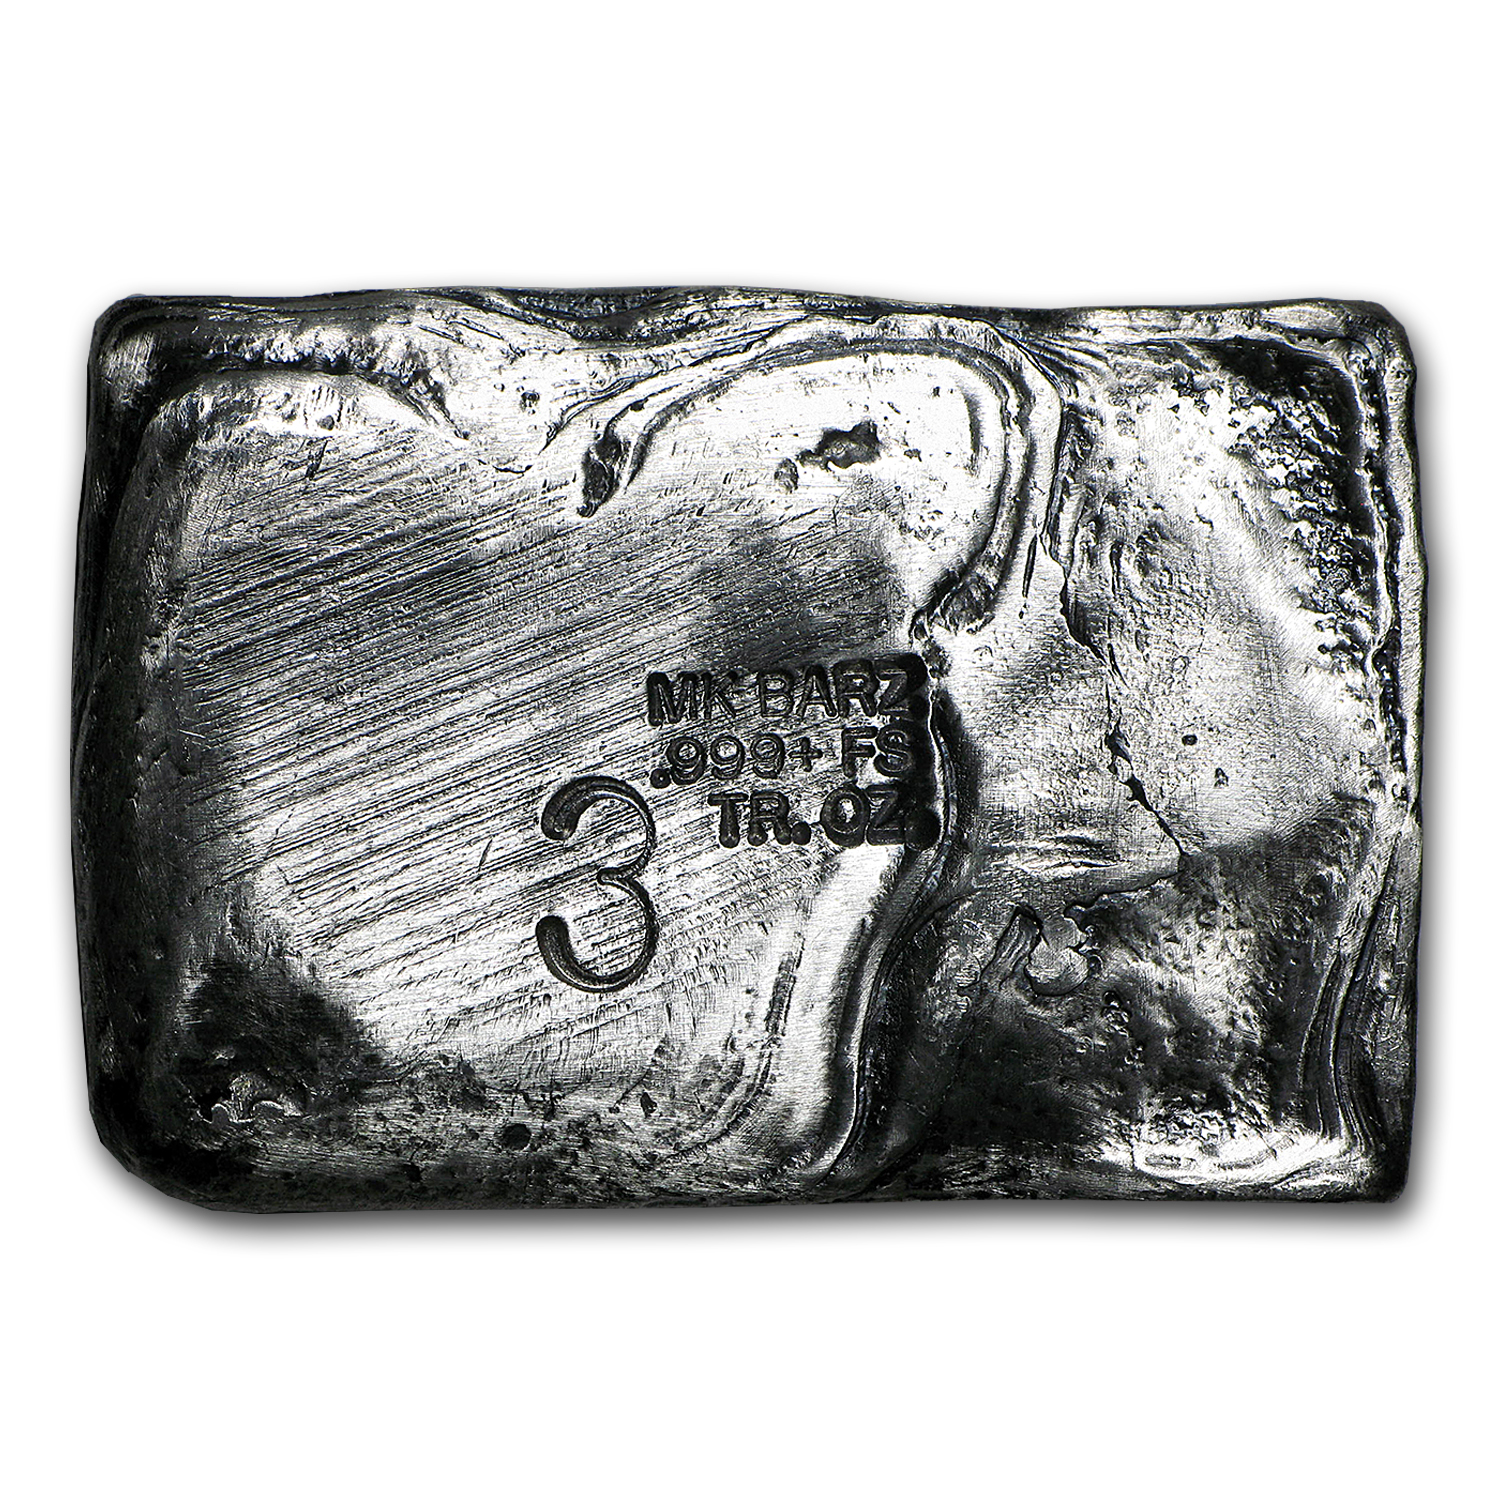 3 oz Silver Bar - Zombie (Limited Edition, Death to Zombies)